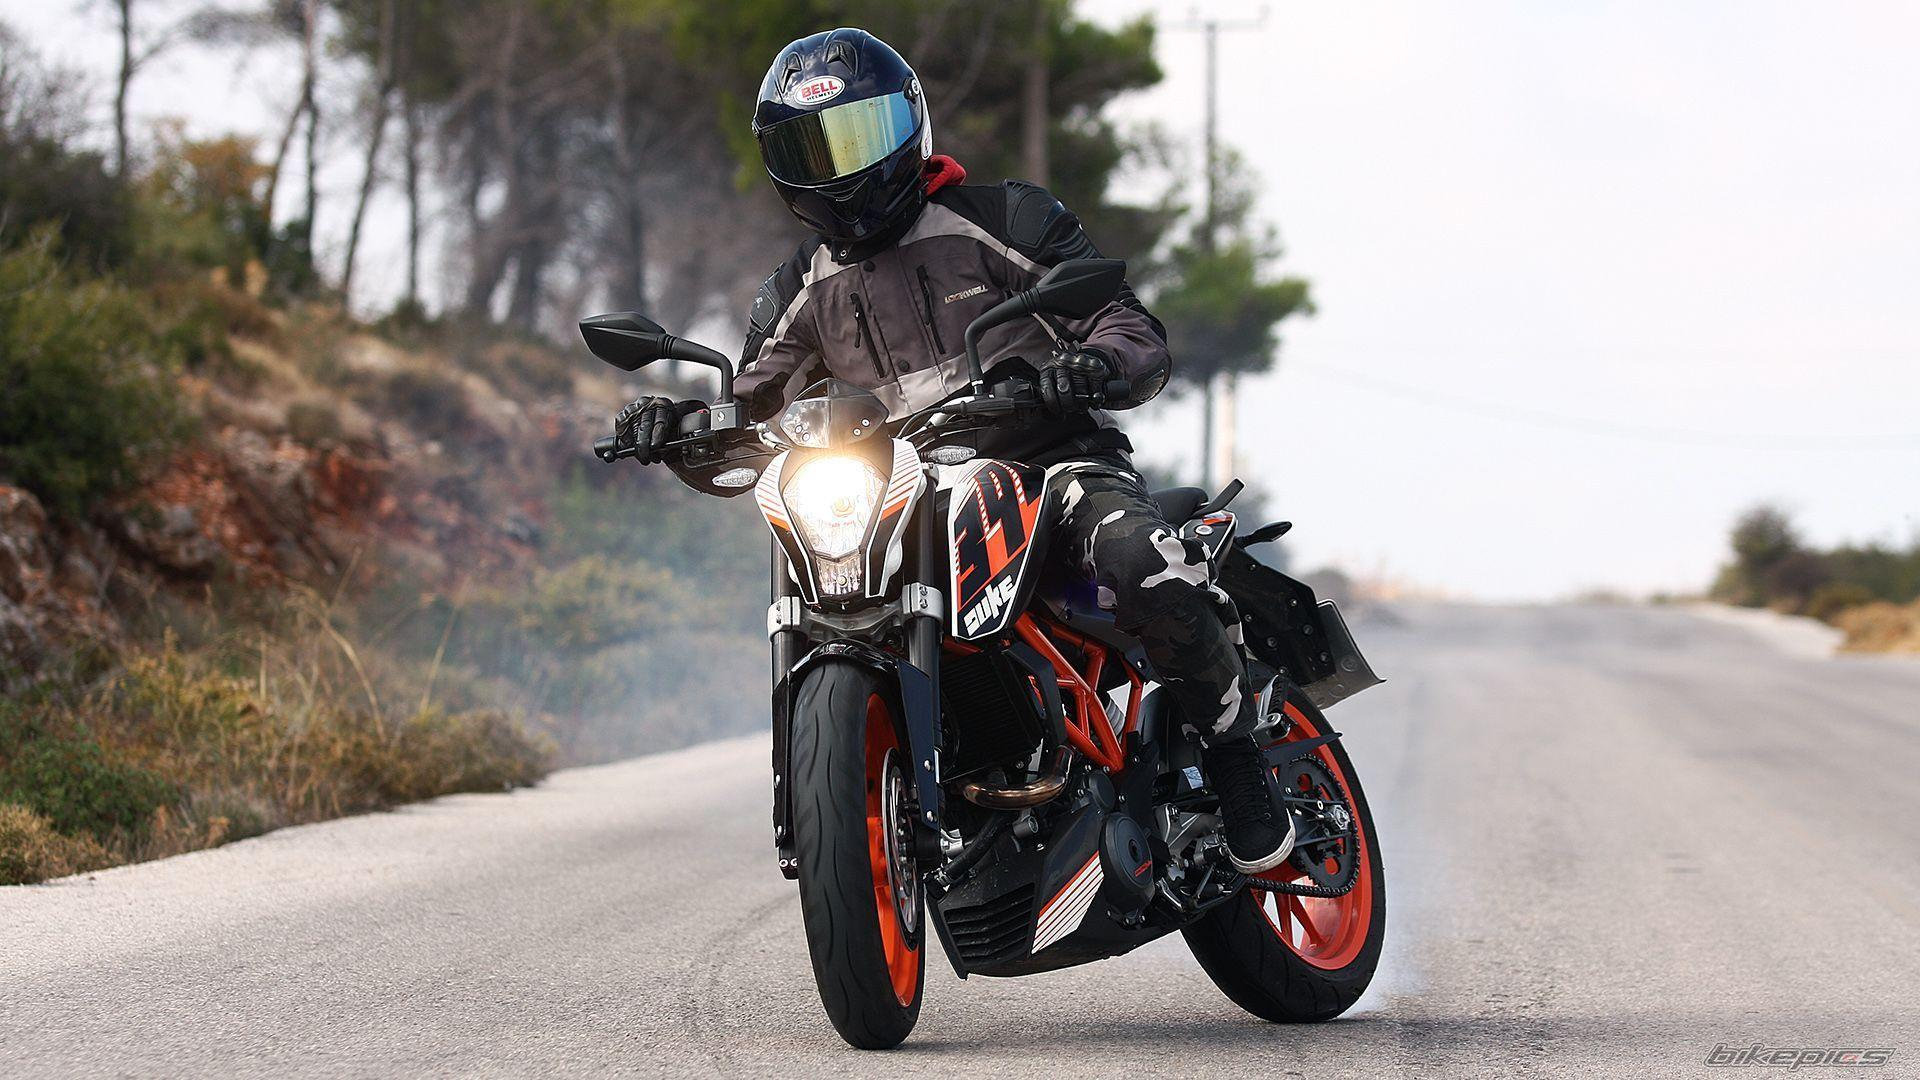 KTM Duke 390 ABS one of the top most bike.